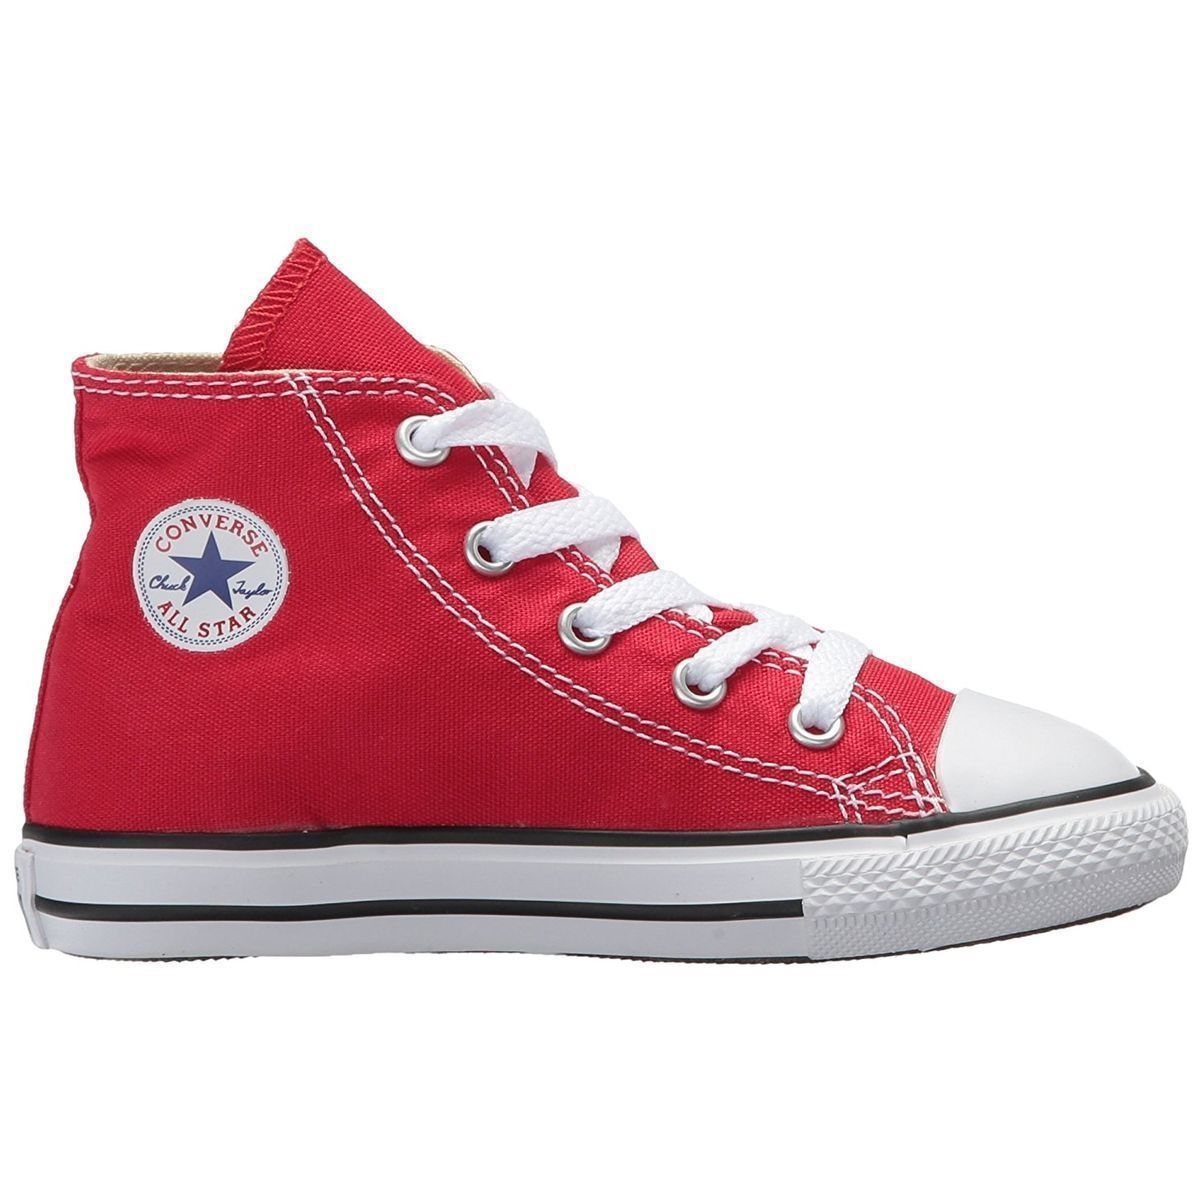 RIÑO_ADA NYON CTAS ALL STAR HI:ROUGE/TOILE/TOILE/CAOUTCHOUC/Rouge